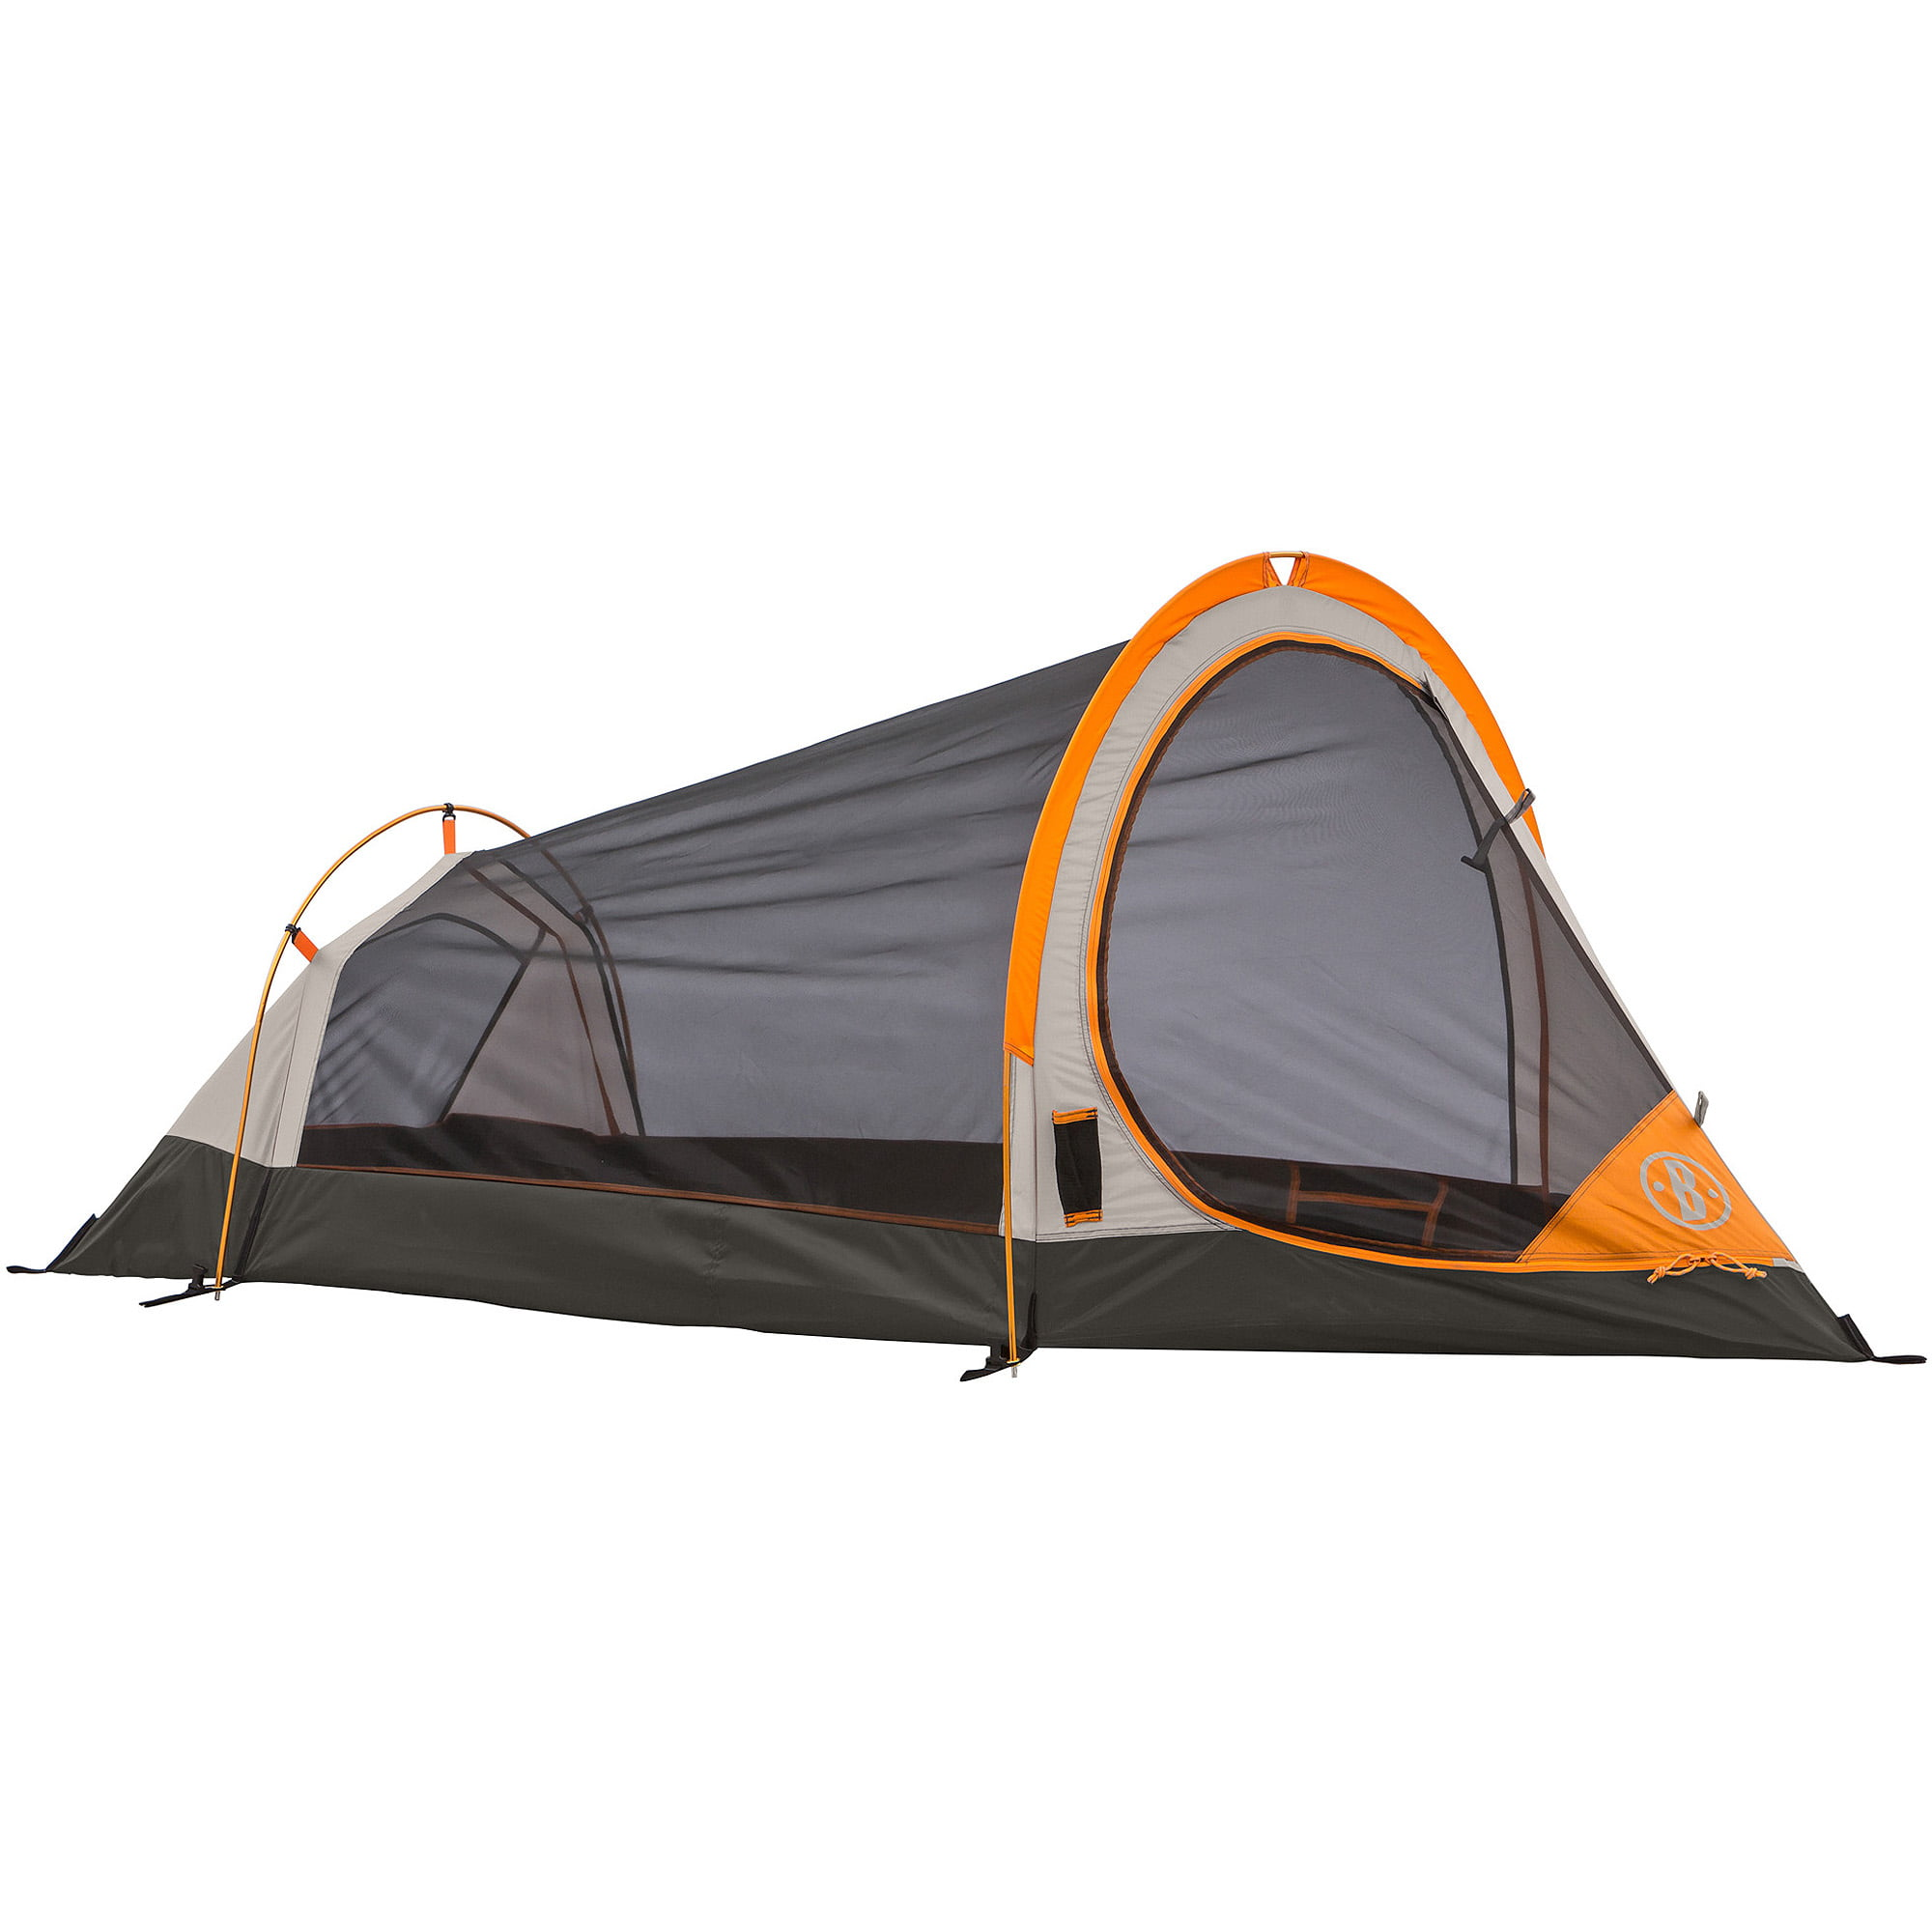 Bushnell Roam Series 8.5u0027 x 3u0027 Backpacking Tent Sleeps 1 - Walmart.com  sc 1 st  Walmart : one person tents backpacking - memphite.com